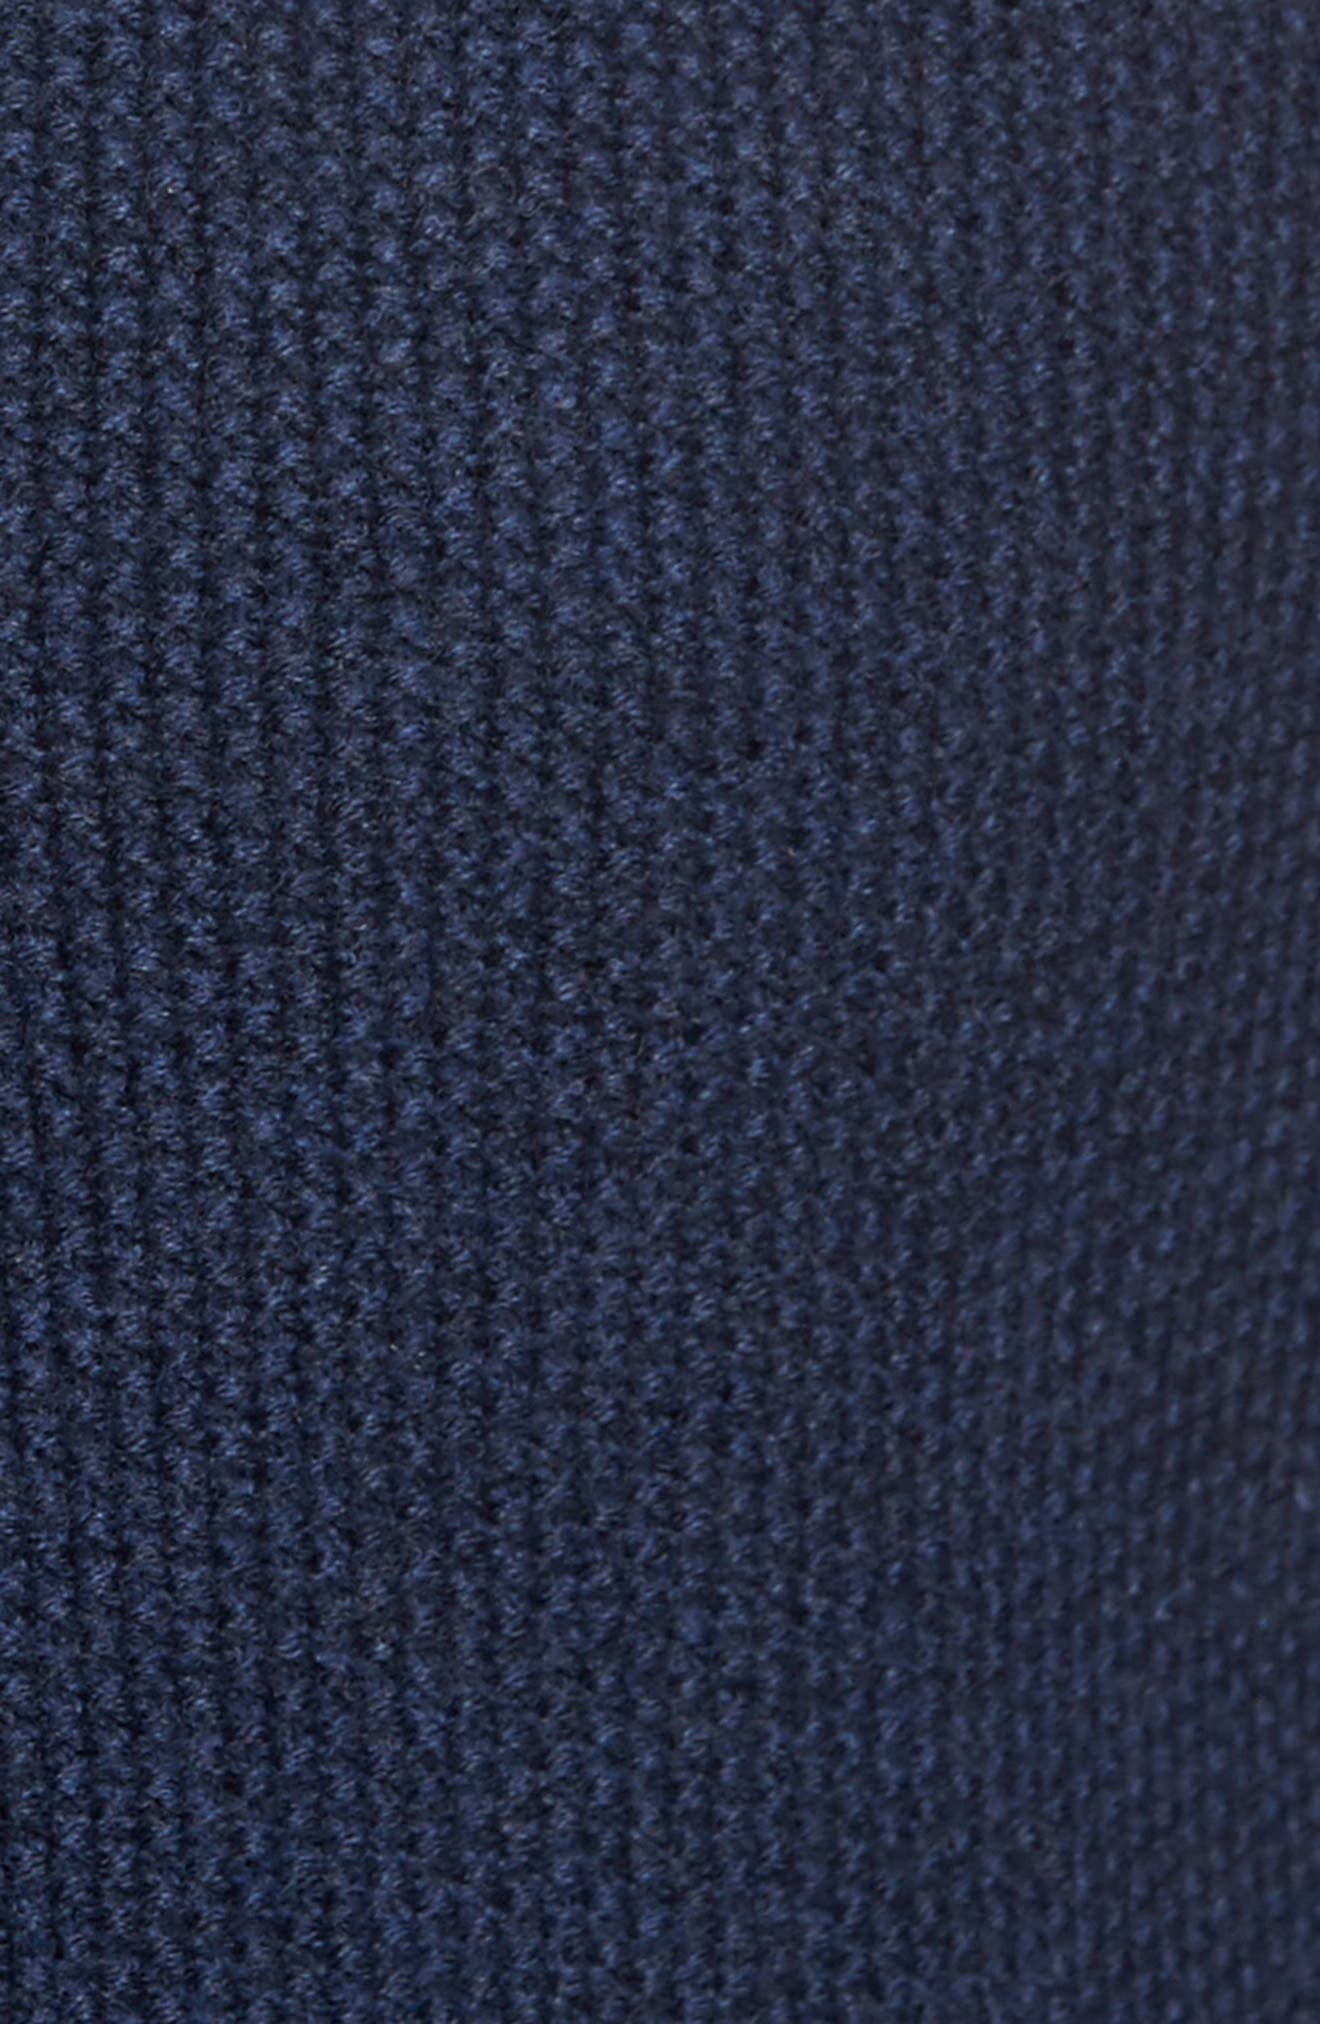 Haydon Merino Wool Sweater Jacket,                             Alternate thumbnail 5, color,                             Navy